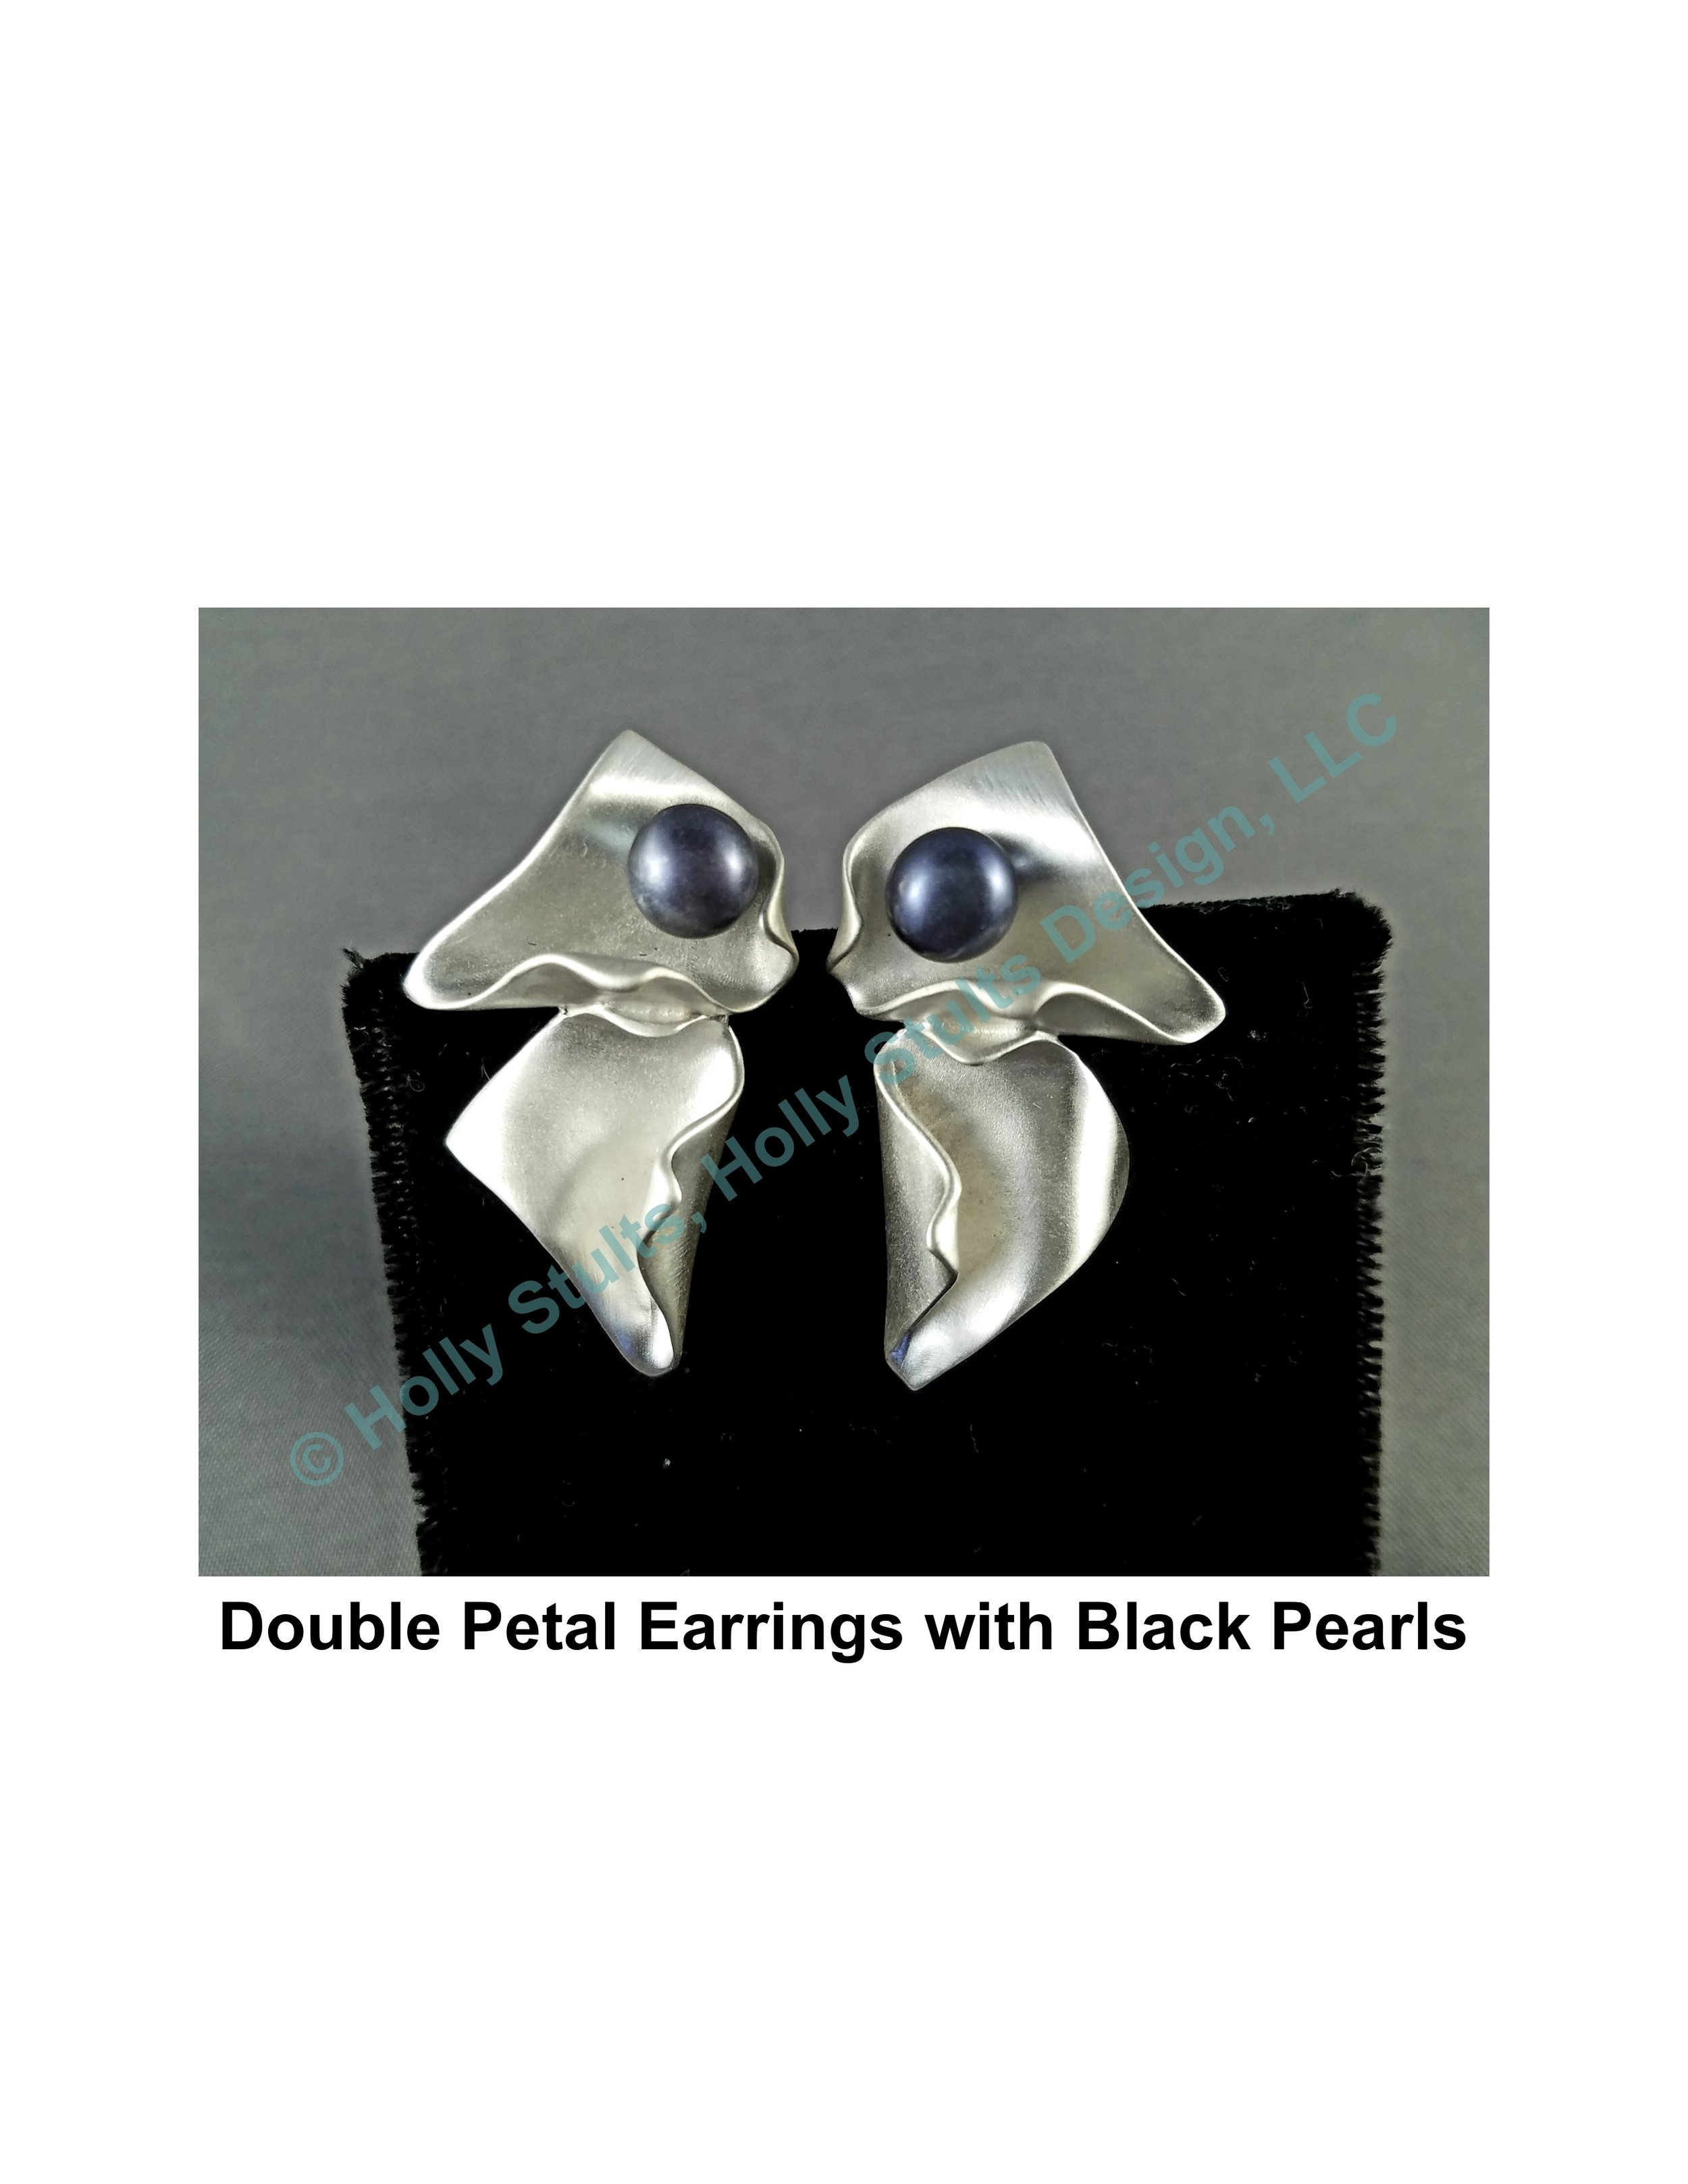 Double Petal Earrings with Black Pearls.jpg